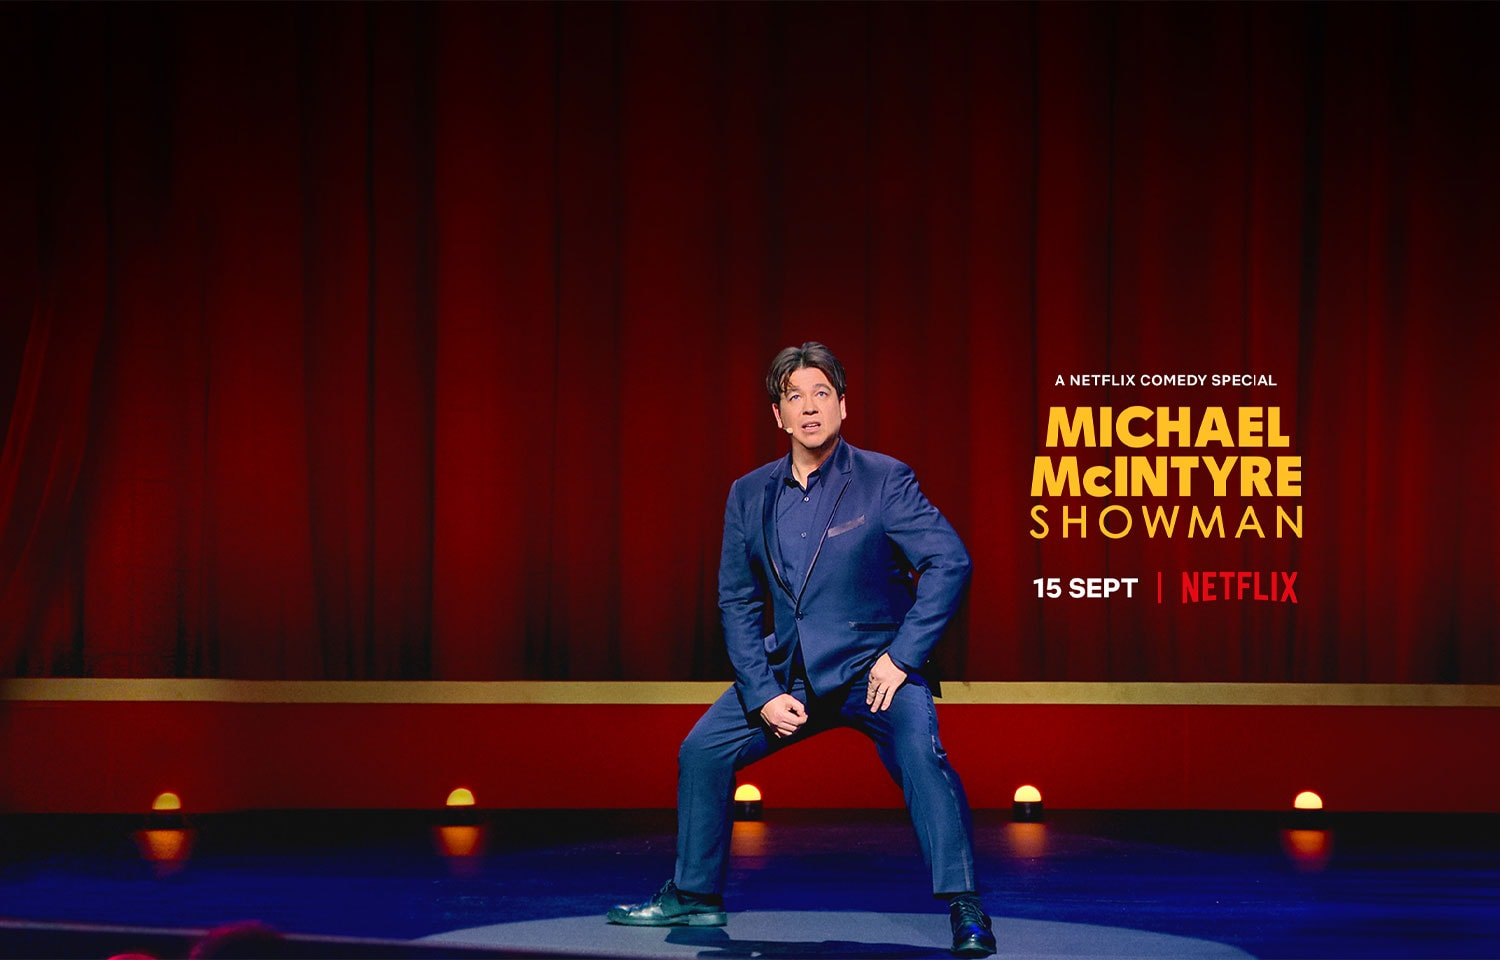 MICHAEL MCINTYRE'S SHOWMAN IS COMING TO NETFLIX ON TUESDAY 15TH SEPTEMBER